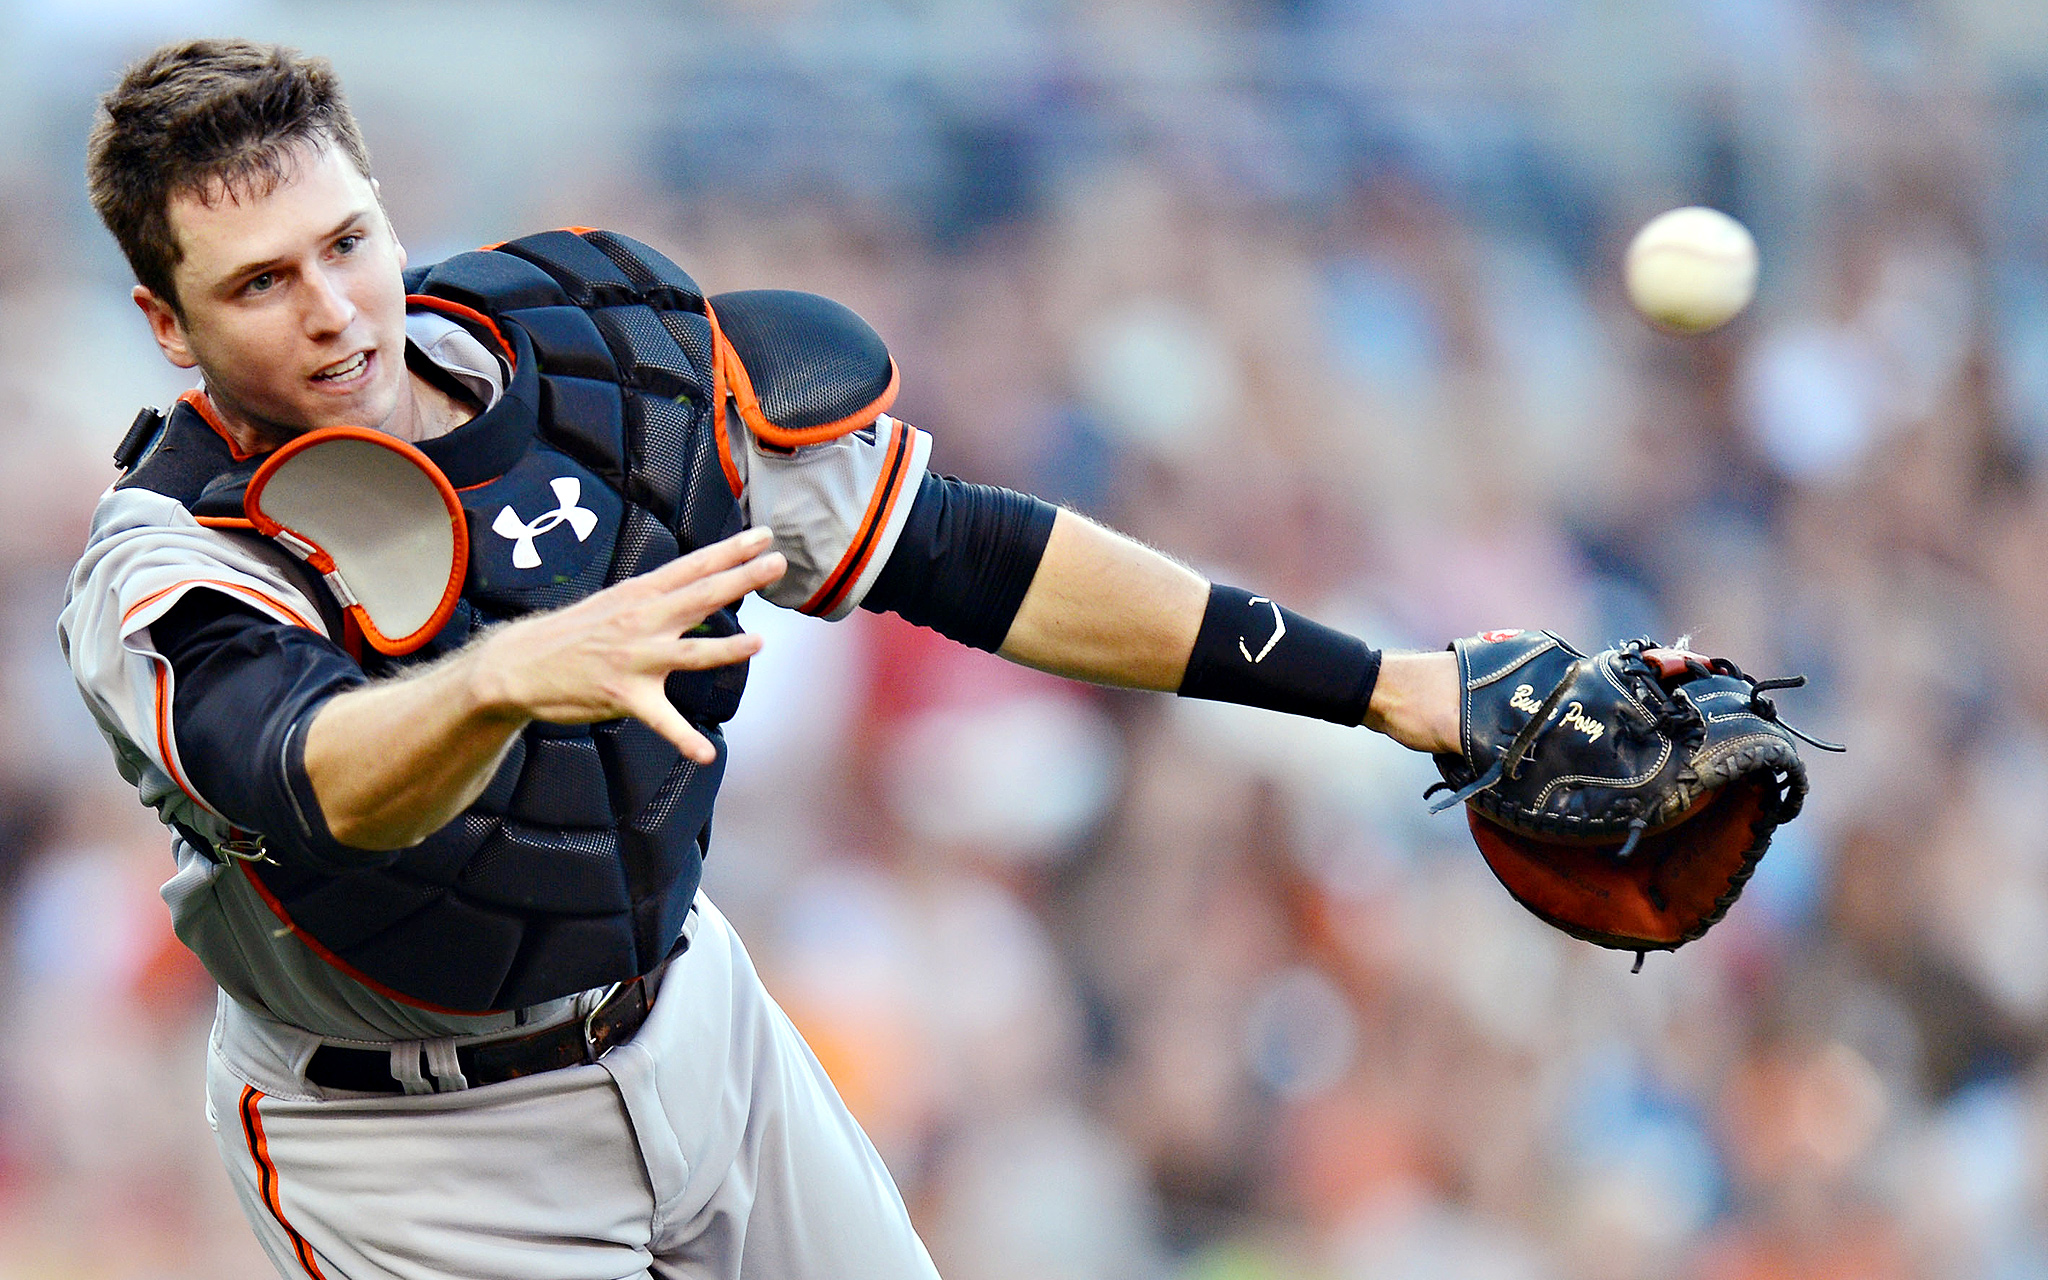 Buster Posey, C